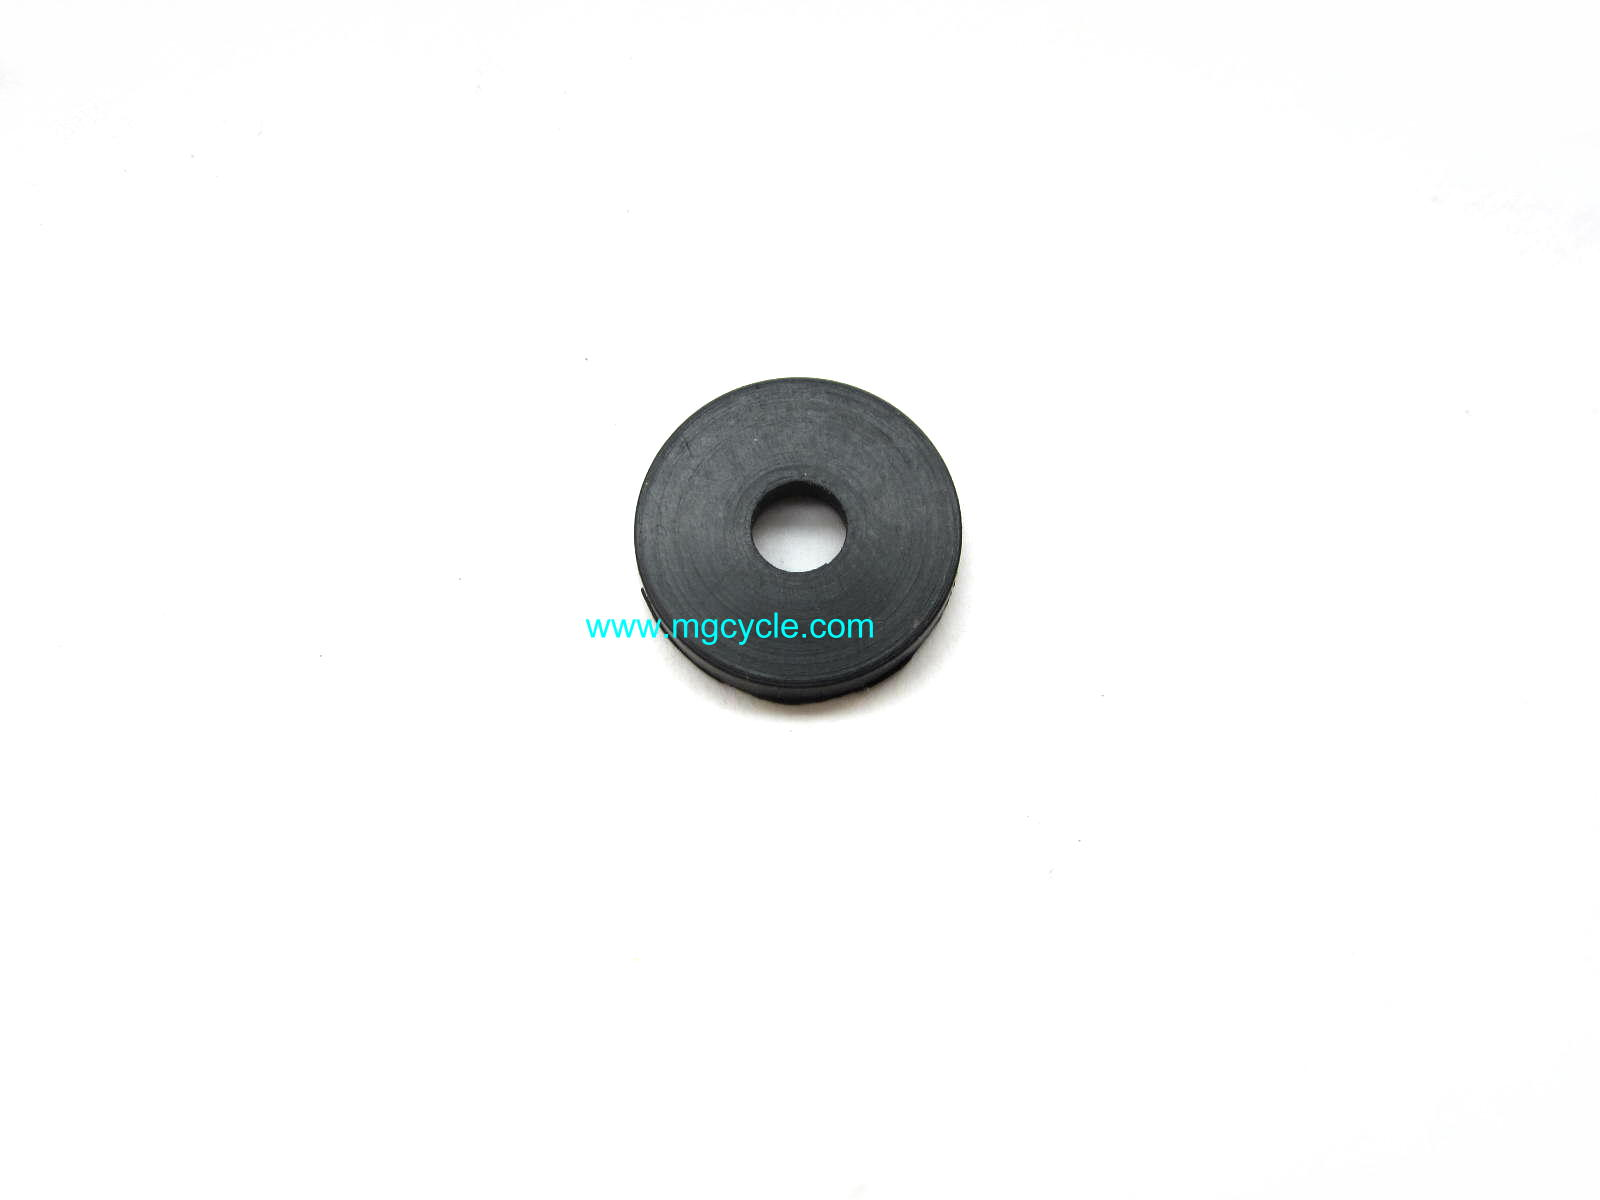 Rubber washer for rubber mounting, 6mm bolt GU93110060